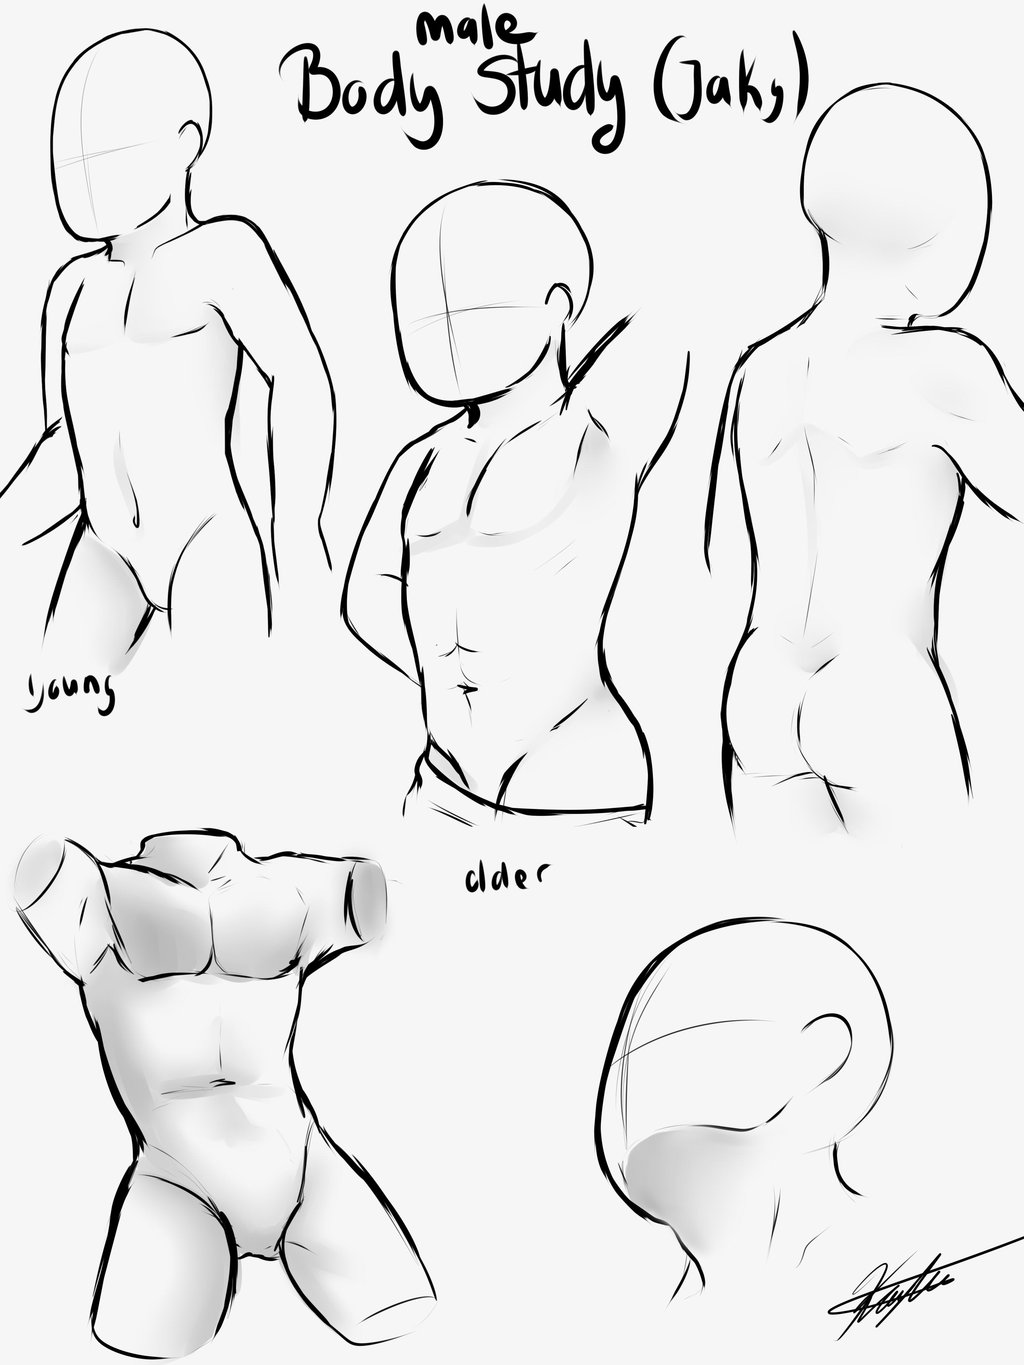 Male Body Outline Drawing at GetDrawings.com | Free for personal use ...